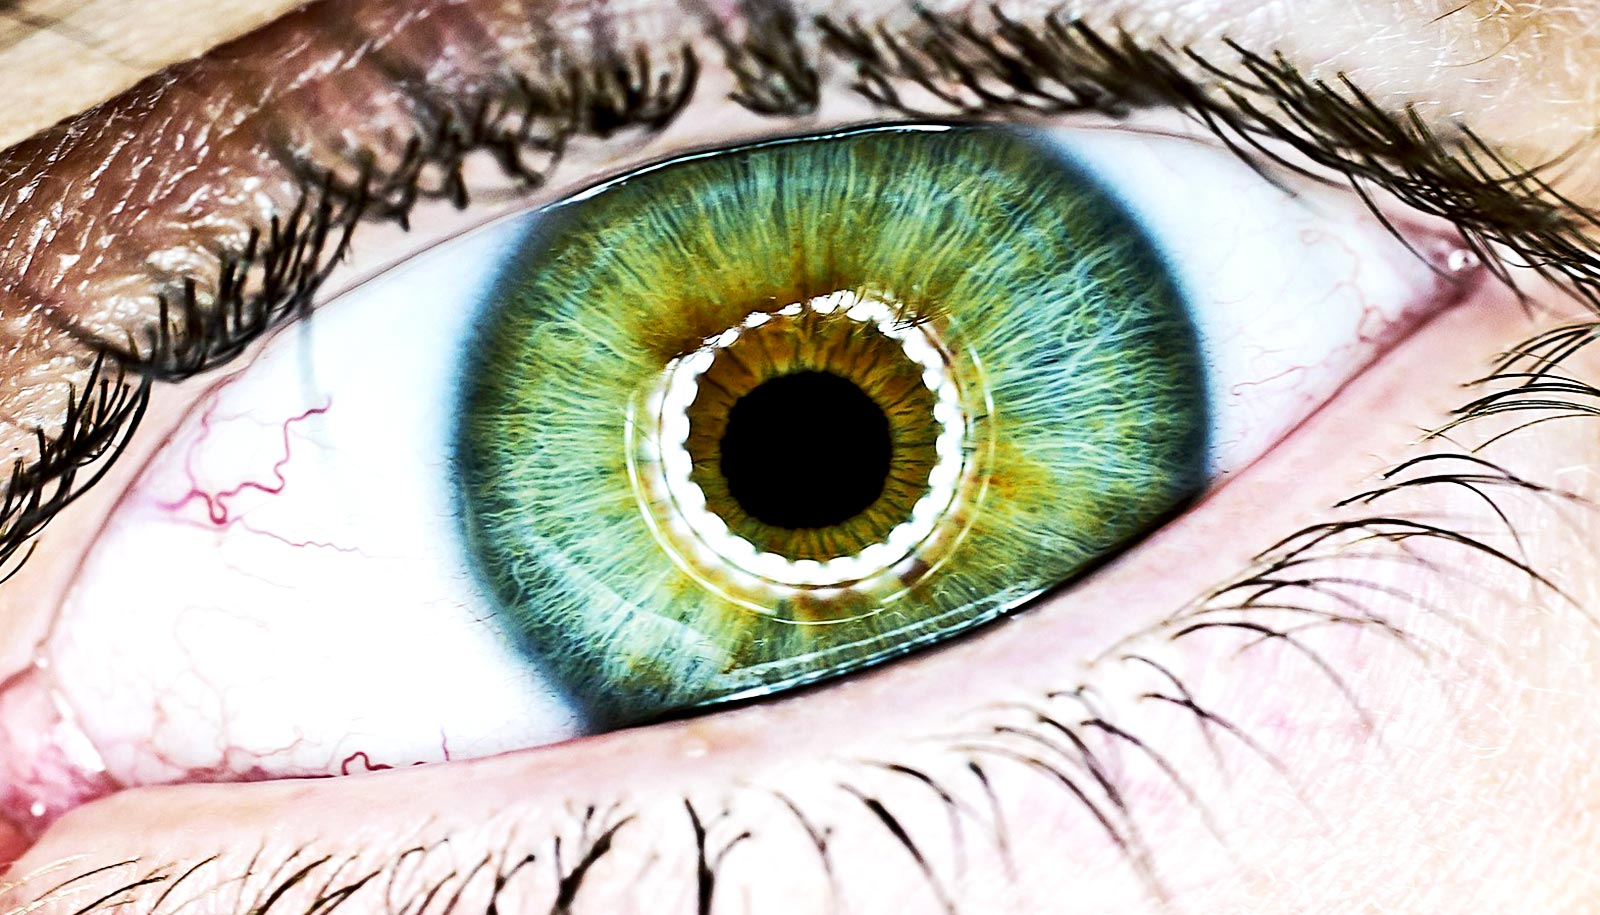 Your pupils show whether you'll remember stuff - Futurity